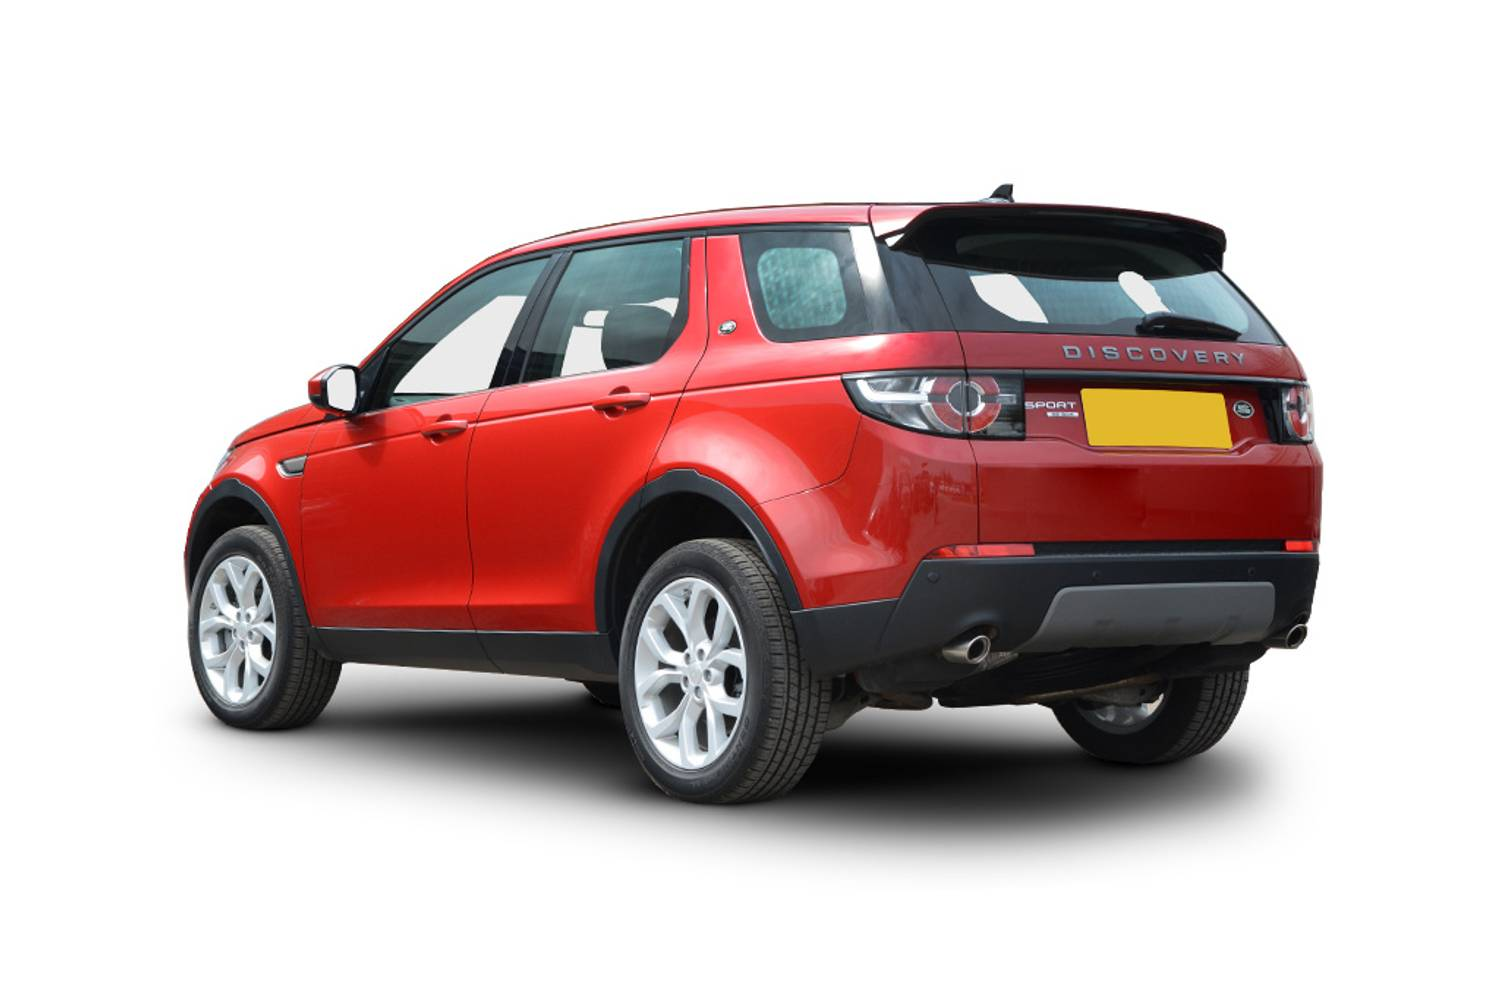 Best Land Rover Discovery Sport Deals Namecheap Coupon July 2018 Coolant Highly Detailed Vehicle Information 2017 For Sale